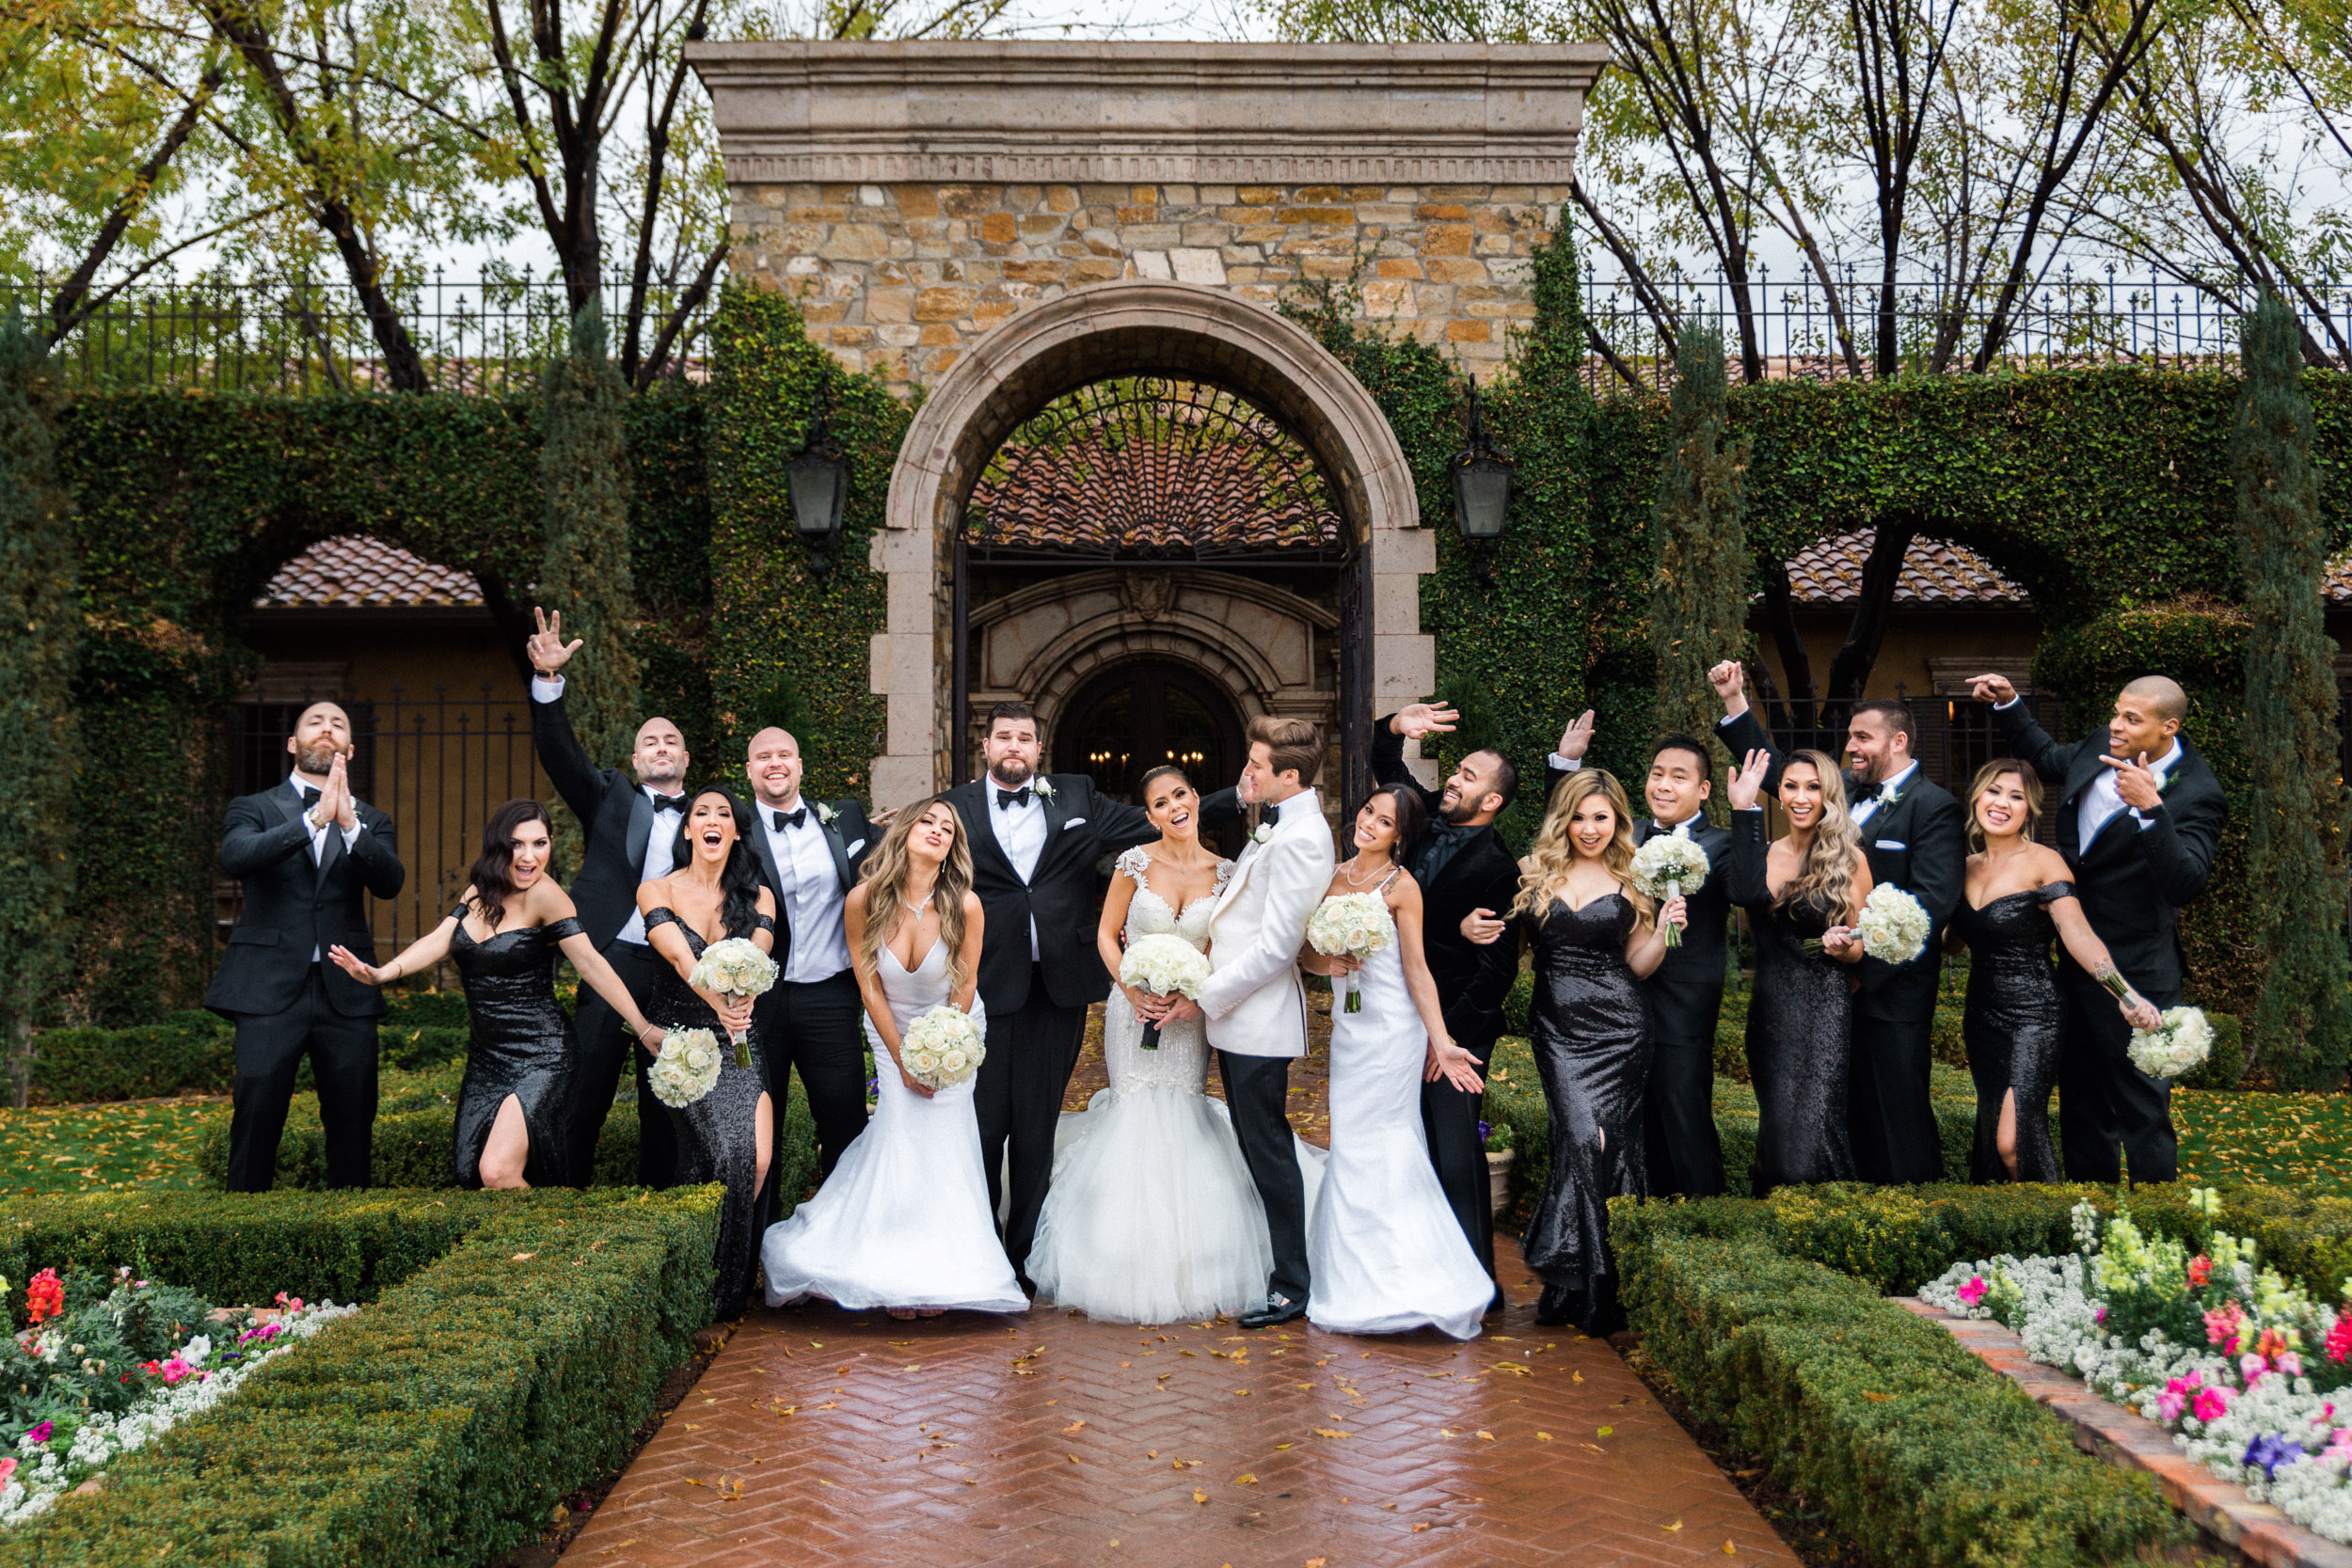 Villa siena wedding fun goofy party photo phoenix arizona